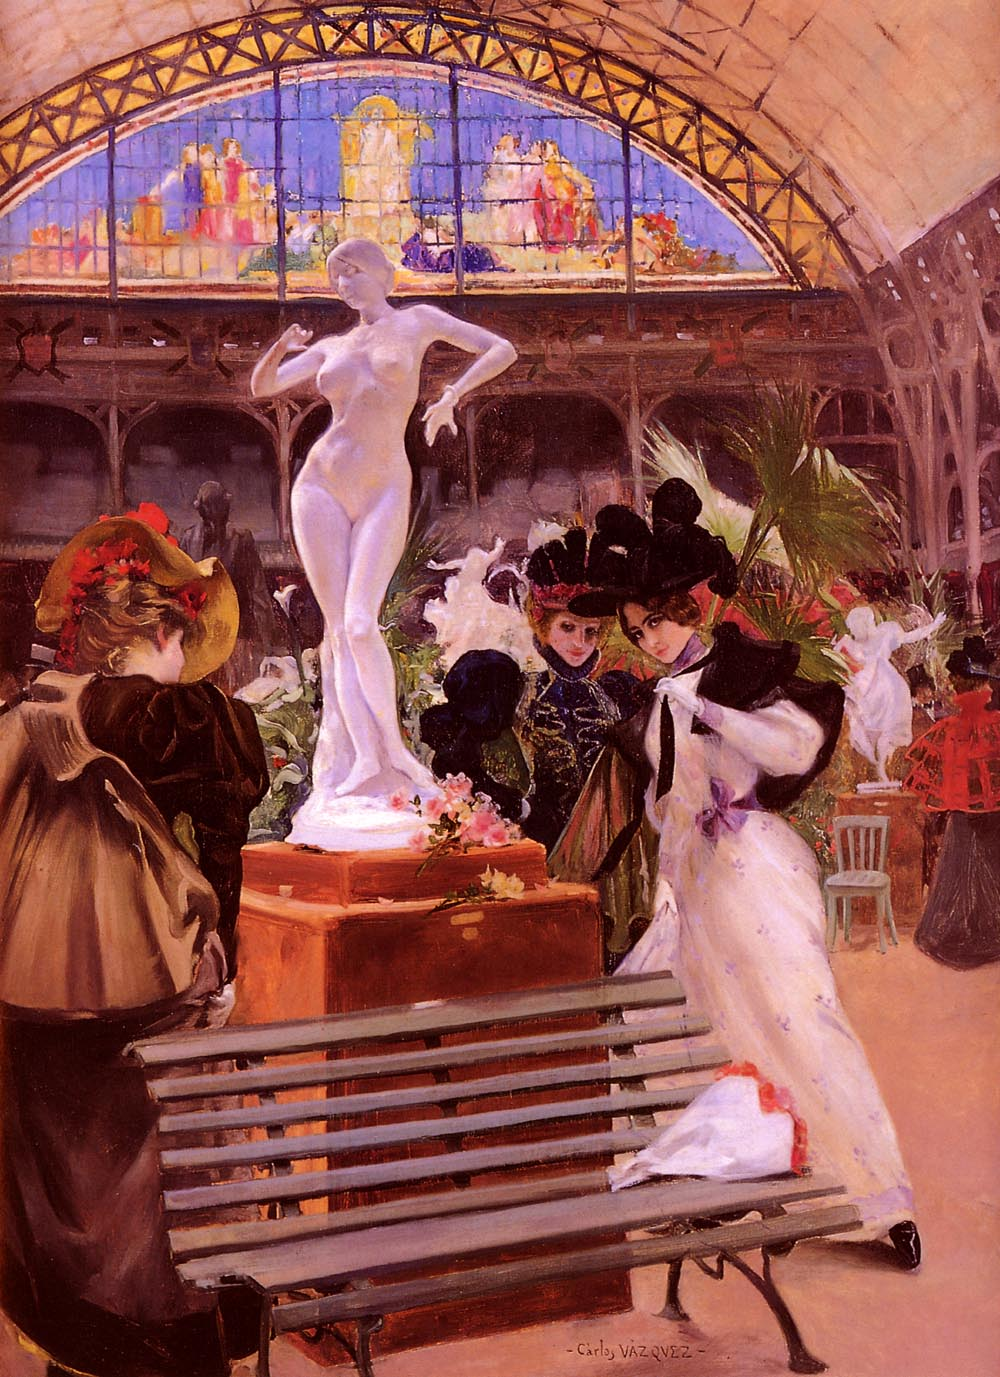 Cleo De Merode at the Salon by Carlos Vazquez Ubeda (1869 - 1944)